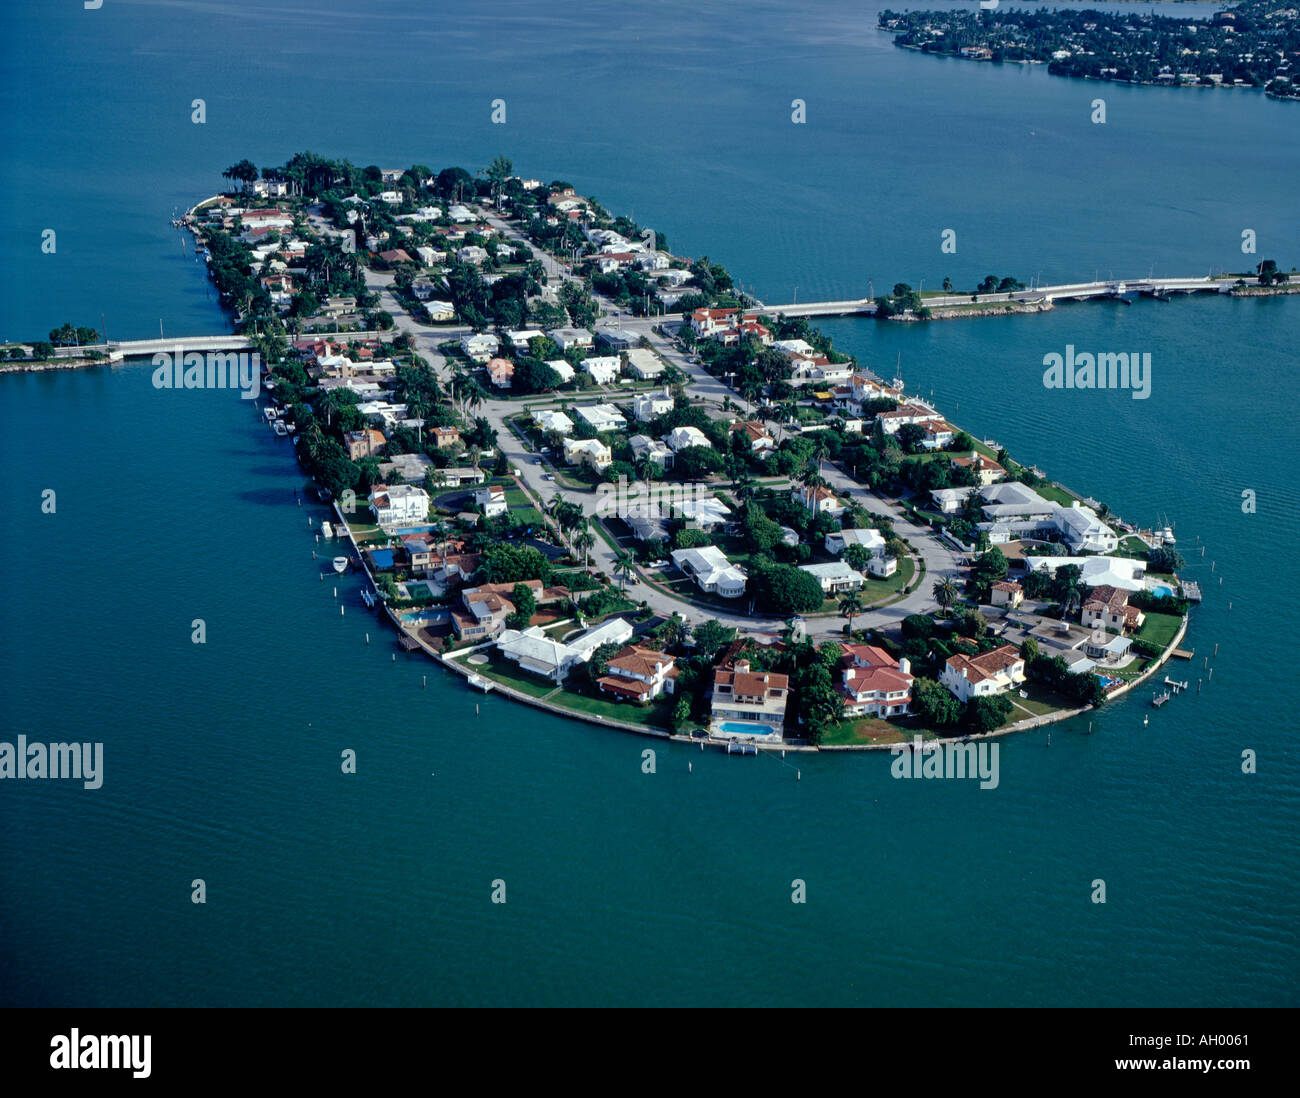 luxury homes on island in Biscayne Bay in Miami Florida USA - Stock Image